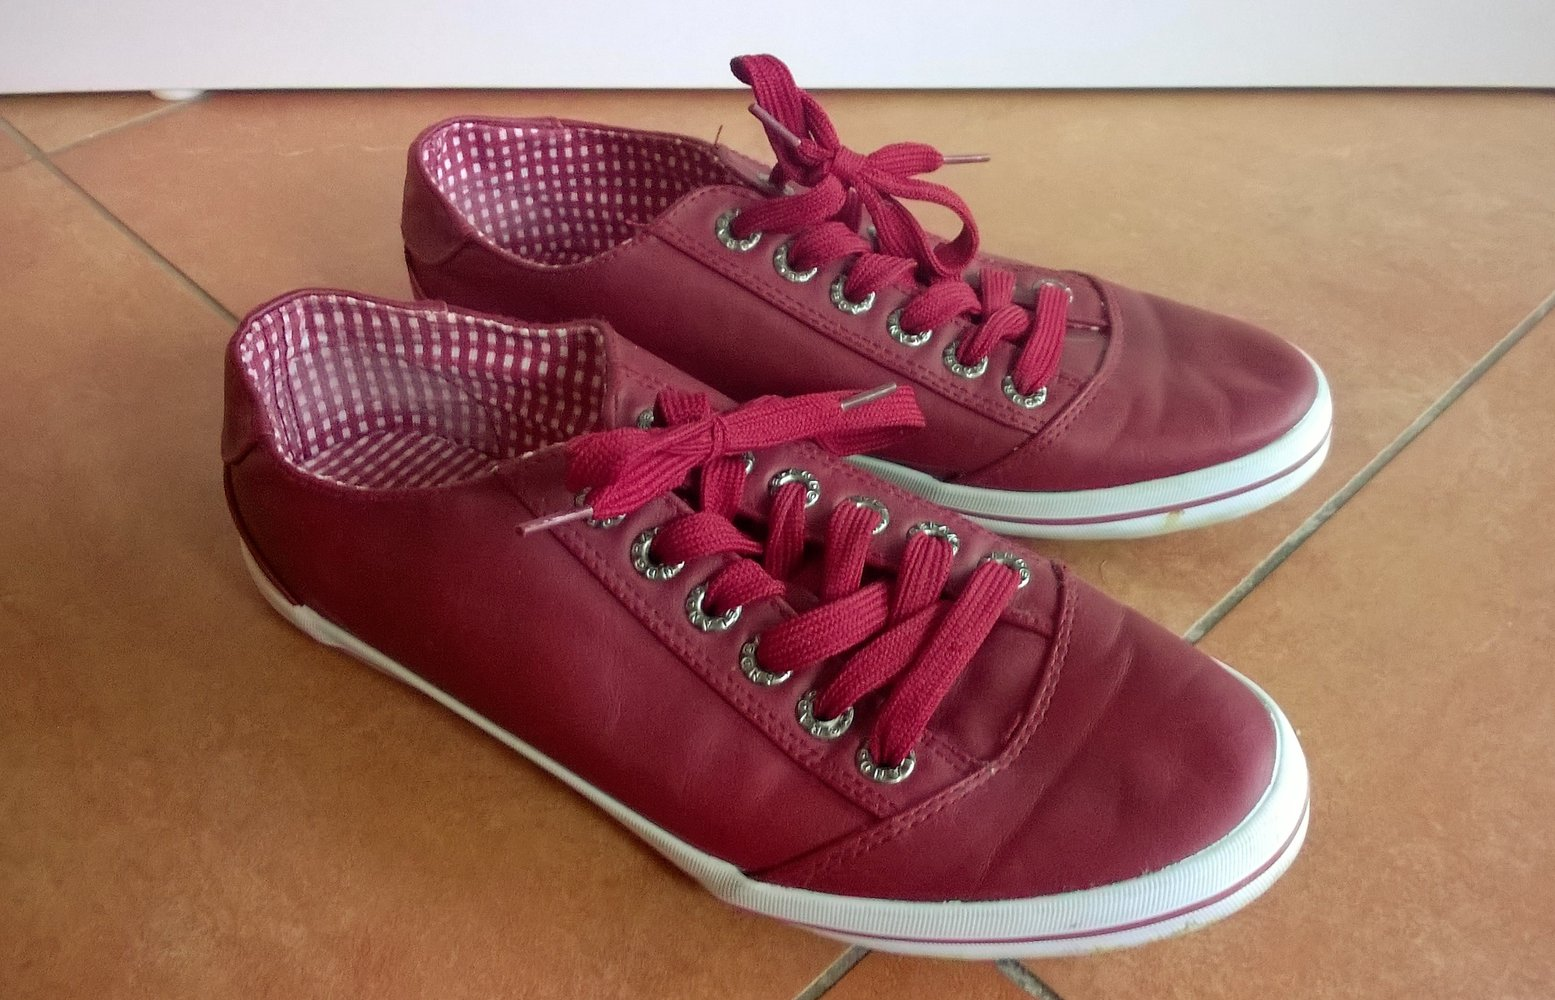 Rote Sneaker Rote Rote Graceland Sneaker Deichmann Graceland Sneaker Deichmann Graceland Rote Deichmann Sneaker Deichmann OX8nP0kw